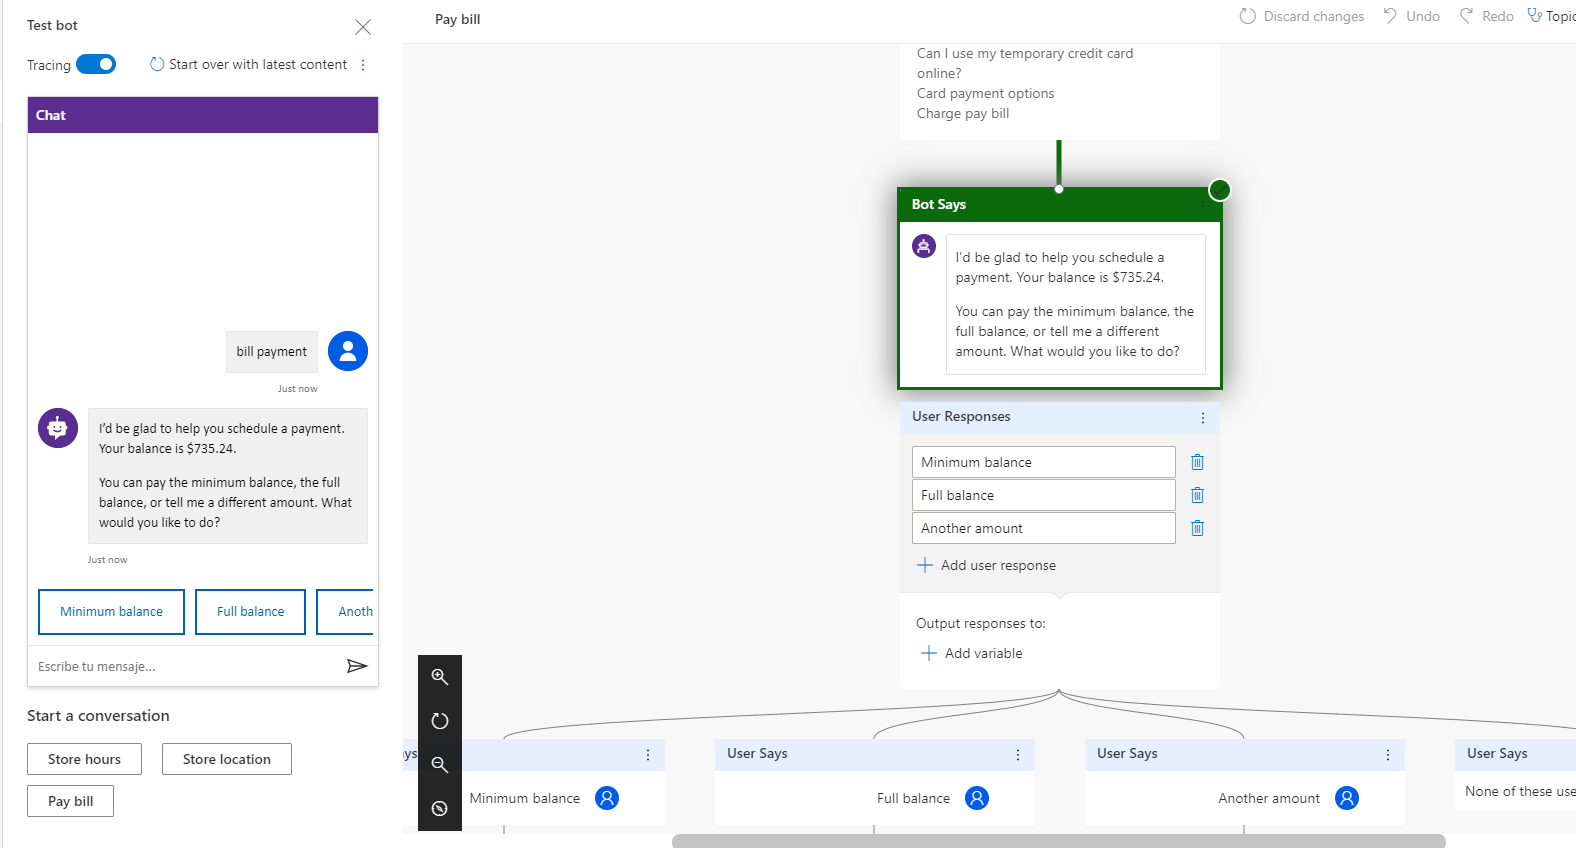 Dynamics 365: you can test the conversation thread of the bot